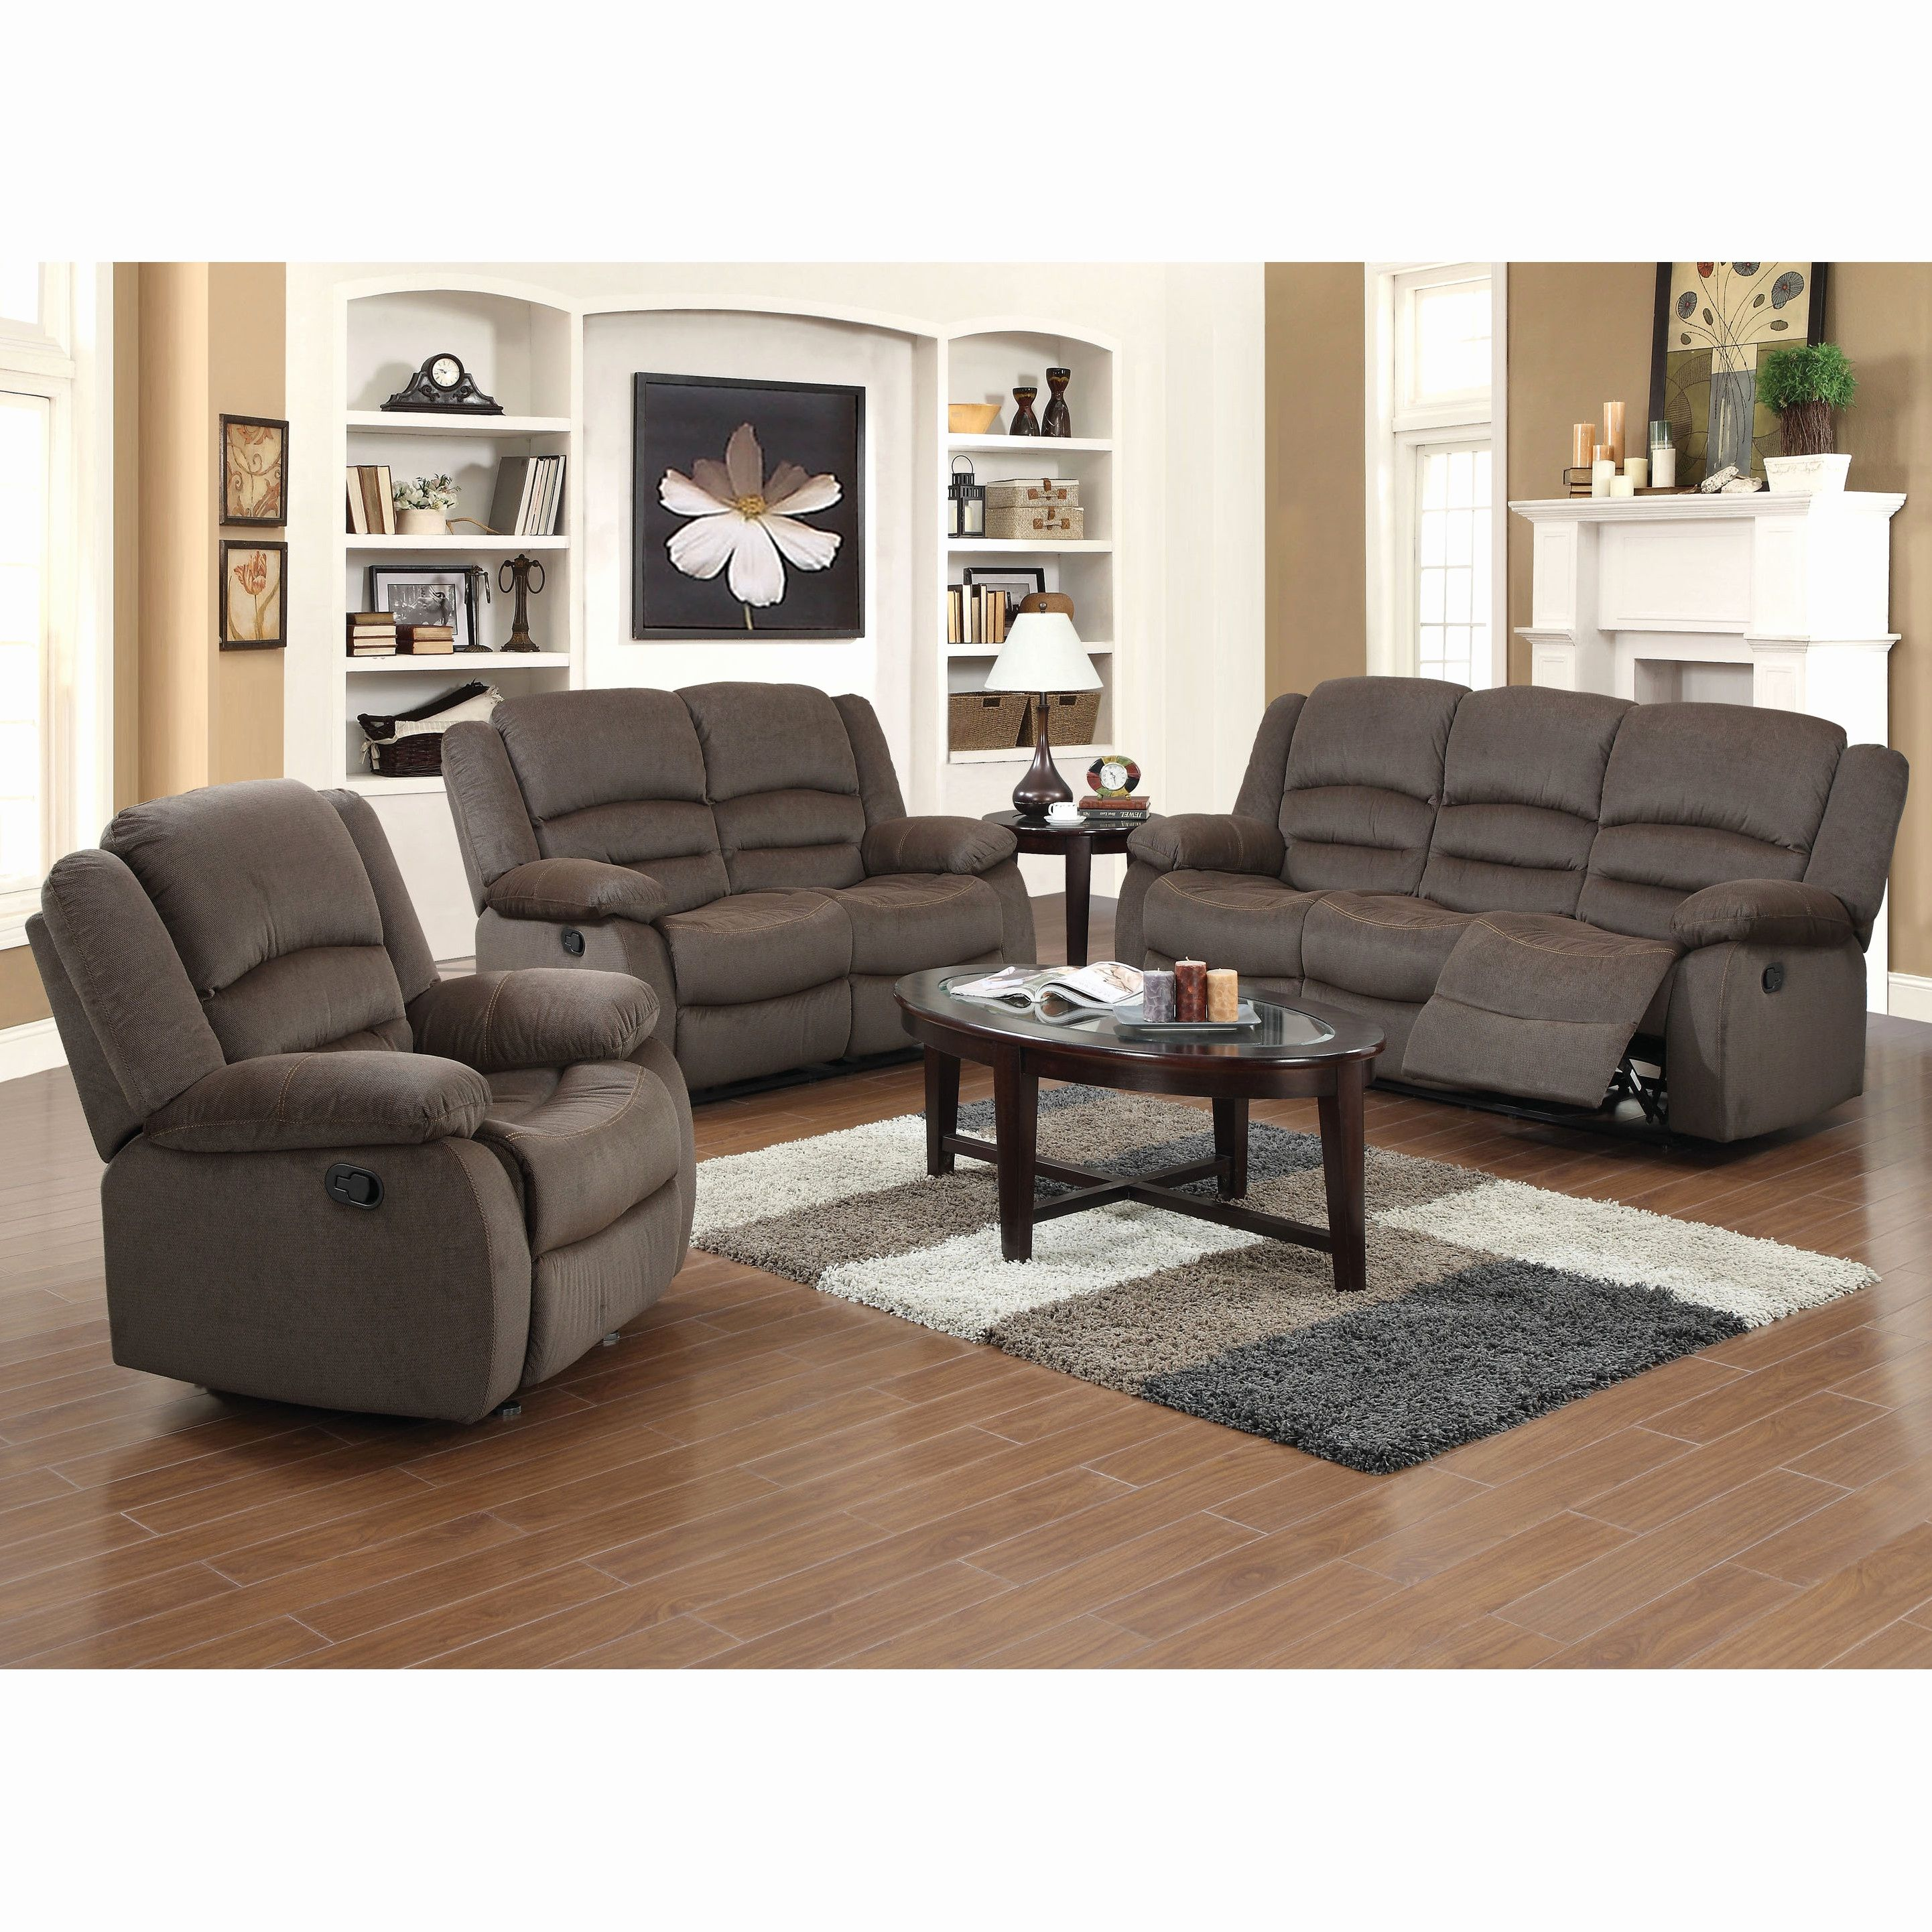 Awesome Microfiber Sofa Sets Furniture White Microfiber Sofa 3 Piece